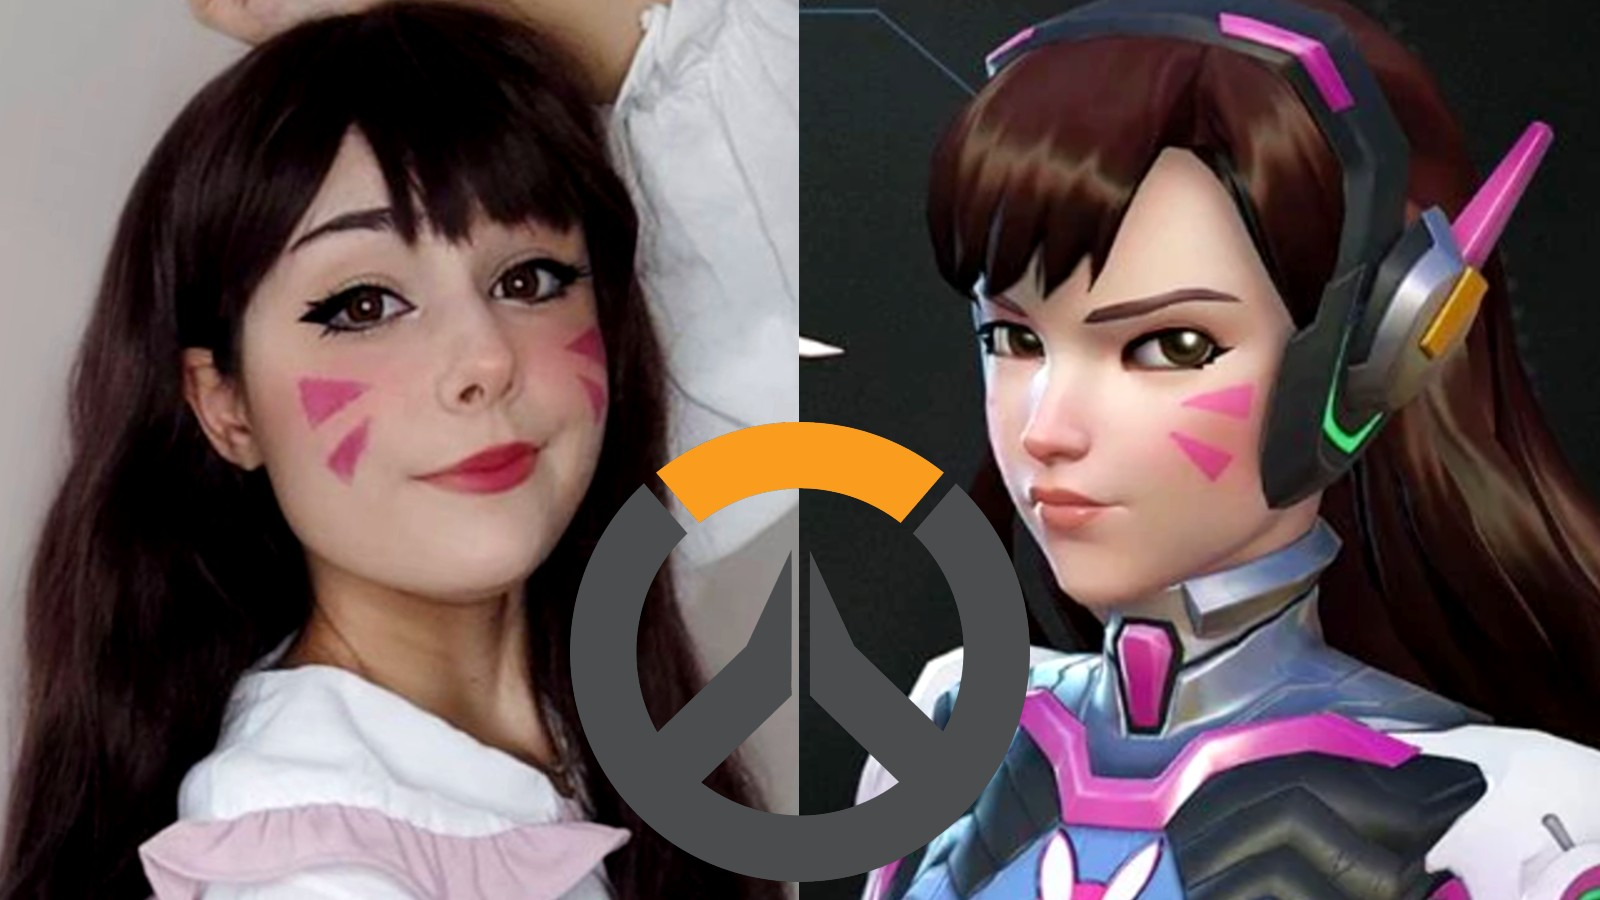 Cosplayer nymphahri as D.Va from Overwatch